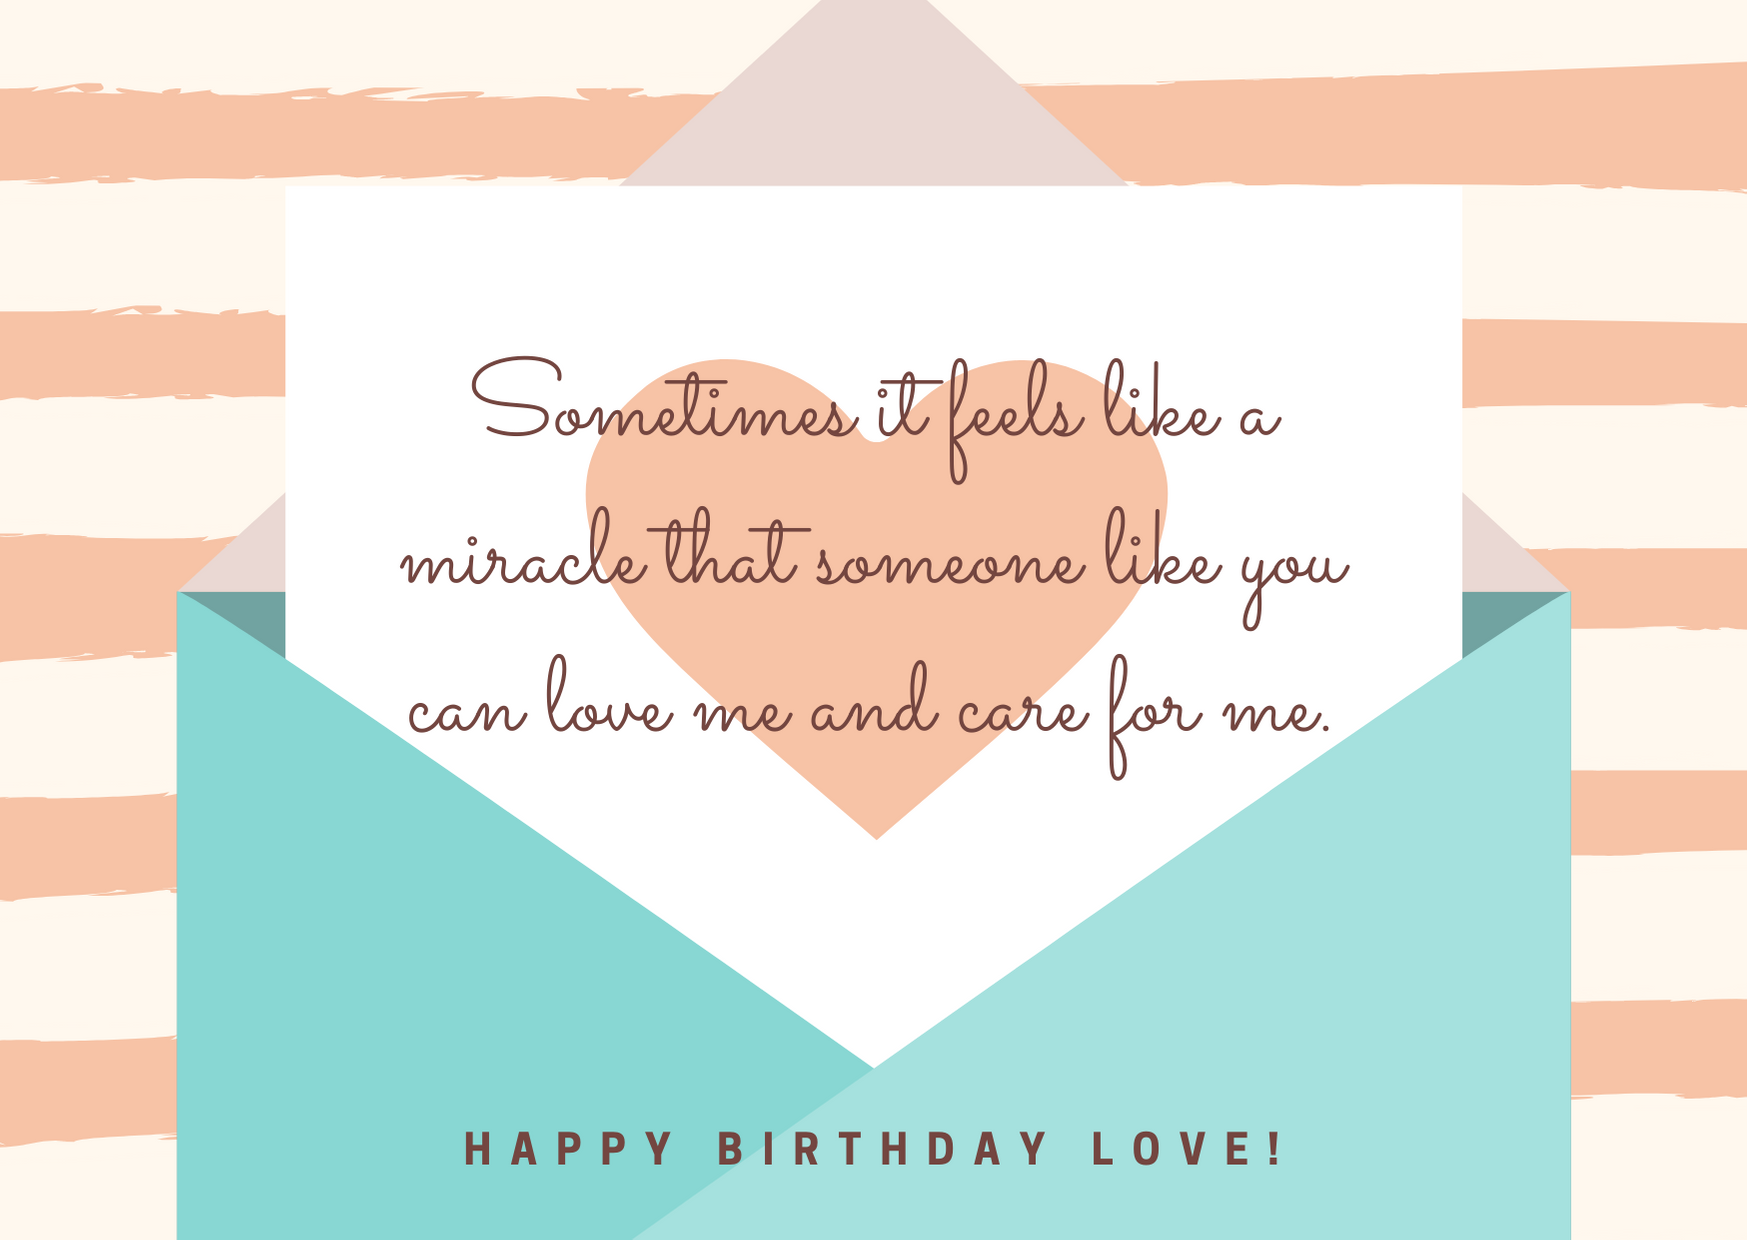 special birthday romantic birthday wishes for boyfriend